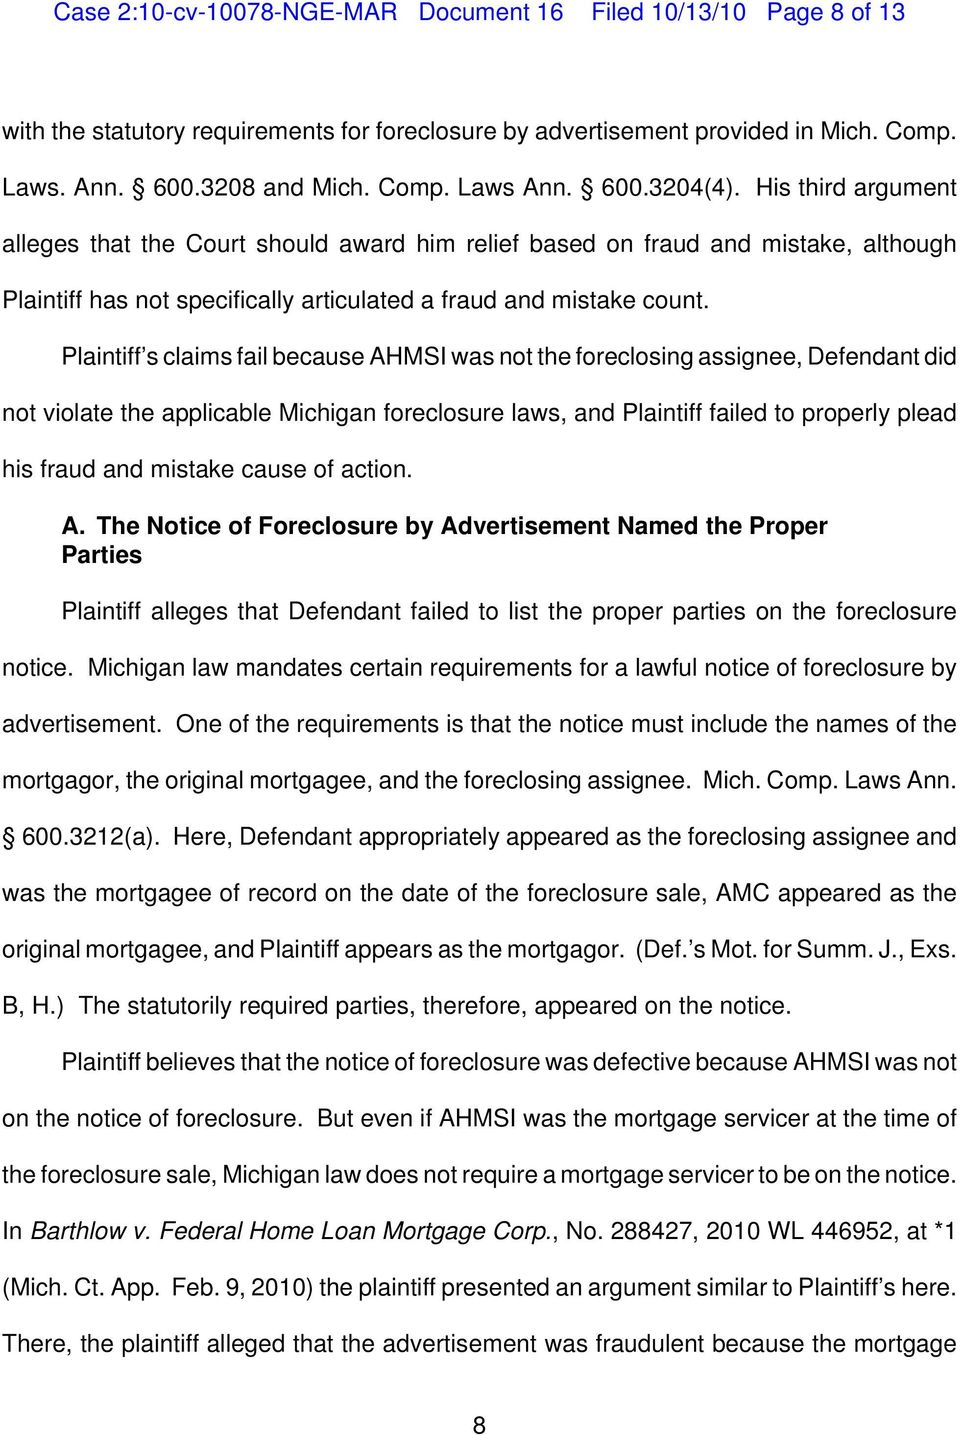 Plaintiff s claims fail because AHMSI was not the foreclosing assignee, Defendant did not violate the applicable Michigan foreclosure laws, and Plaintiff failed to properly plead his fraud and